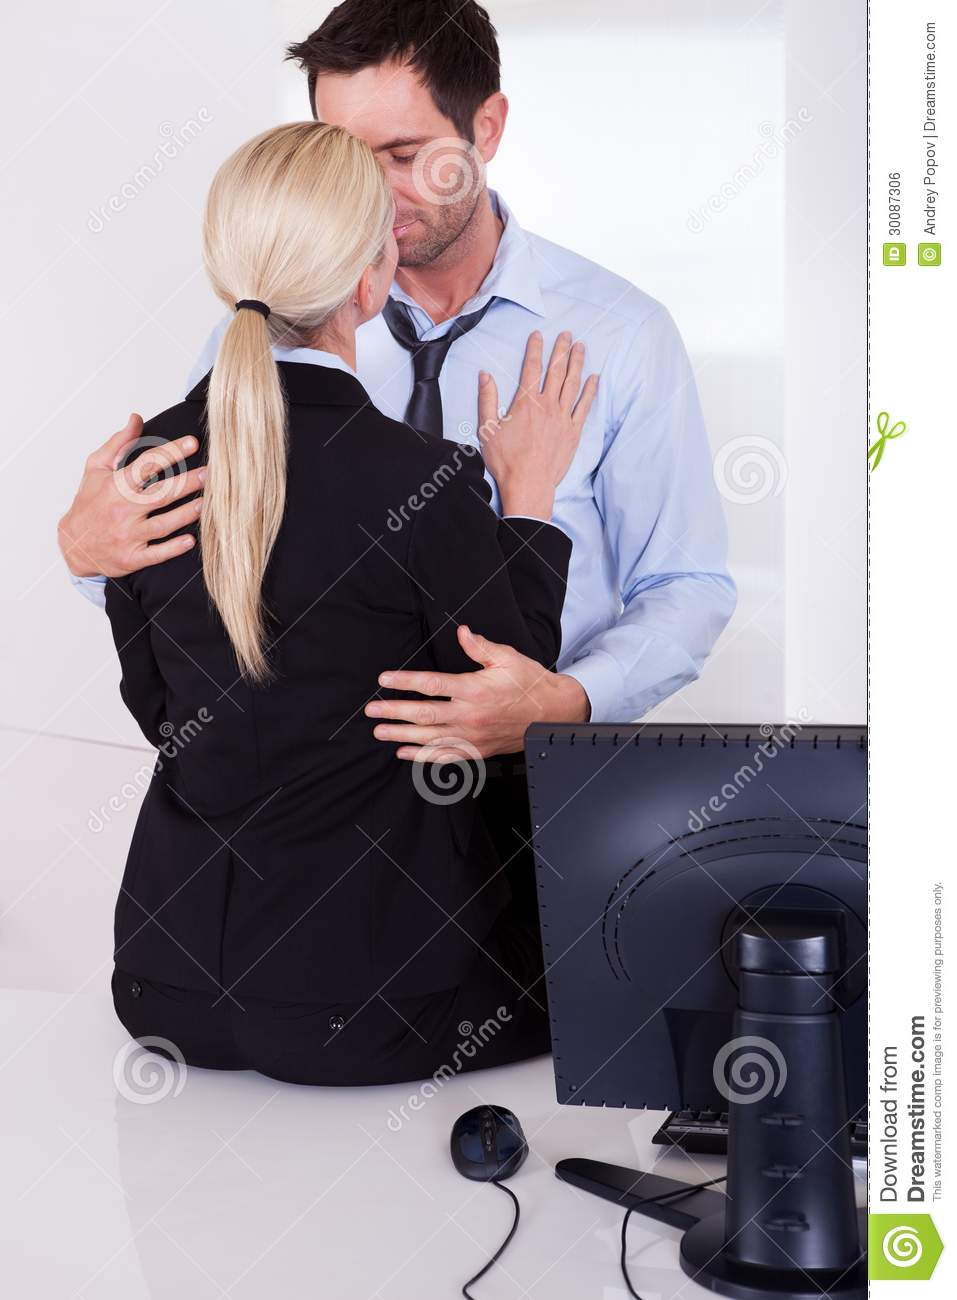 Romance in the workplace